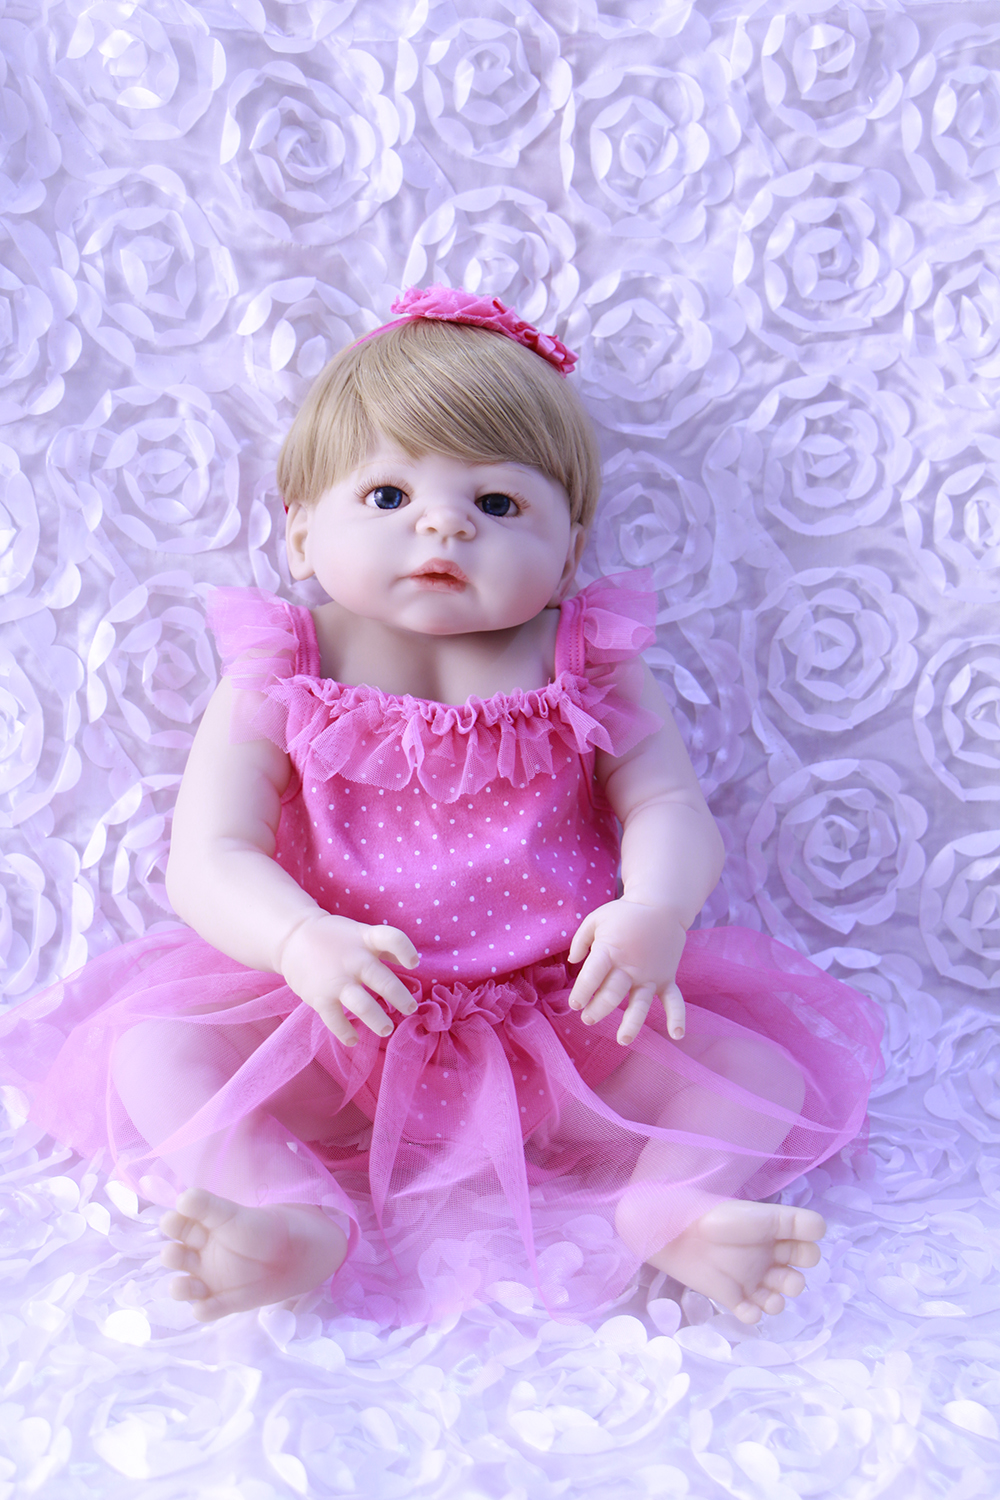 NEW ADORABLE 57CM REBORN DOLL HANDMADE FULL SILICONE bebe DOLL REBORN BONECA IN CUTE CLOTHES FASHION BABY DOLLS FOR GIRLSNEW ADORABLE 57CM REBORN DOLL HANDMADE FULL SILICONE bebe DOLL REBORN BONECA IN CUTE CLOTHES FASHION BABY DOLLS FOR GIRLS